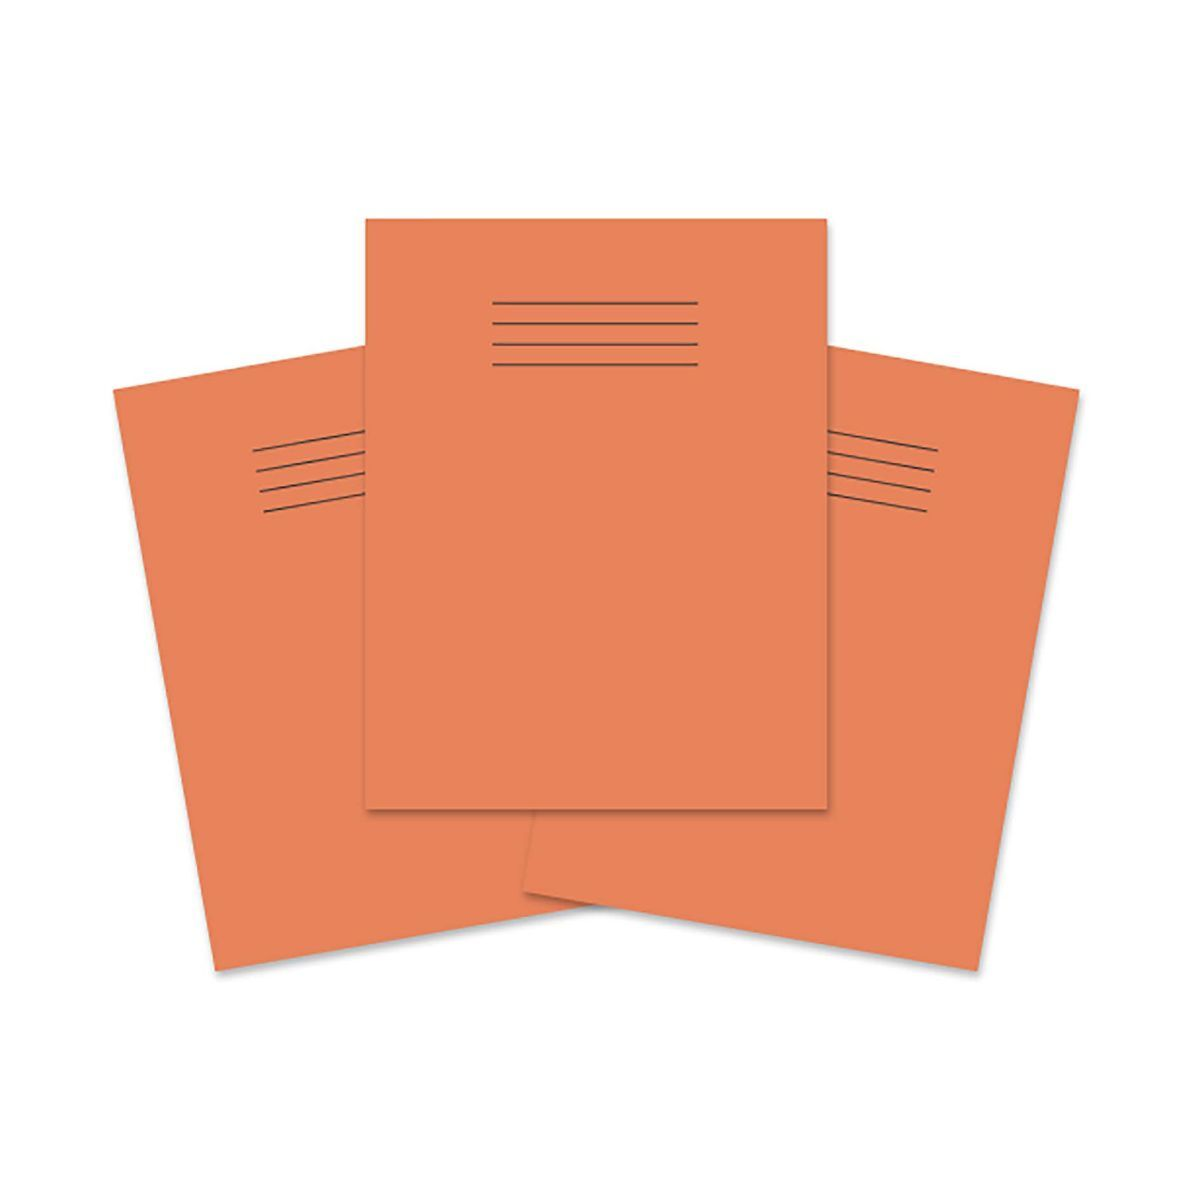 Rhino Exercise Book 9 inch x 7 Inch 80 Pages 7mm Squares Pack of 100 Orange